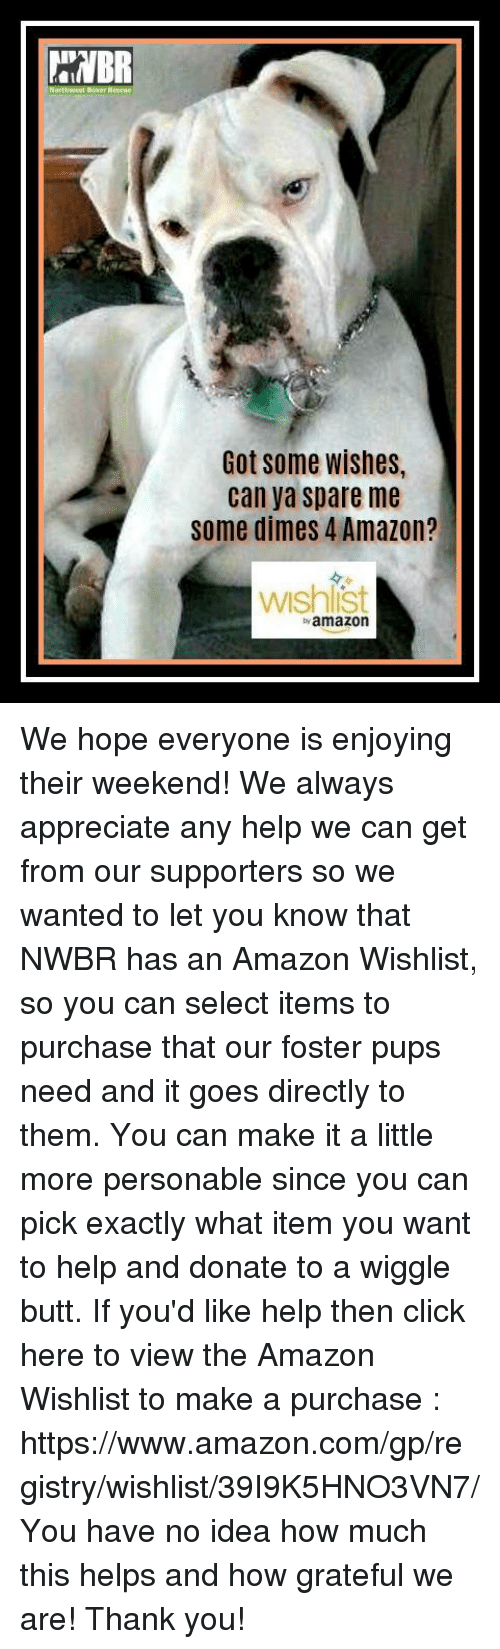 Amazon, Butt, and Click: Got some wishes,  can ya spare me  some dimes 4 Amazon?  wshlist  yamazon We hope everyone is enjoying their weekend! We always appreciate any help we can get from our supporters so we wanted to let you know that NWBR has an Amazon Wishlist, so you can select items to purchase that our foster pups need and it goes directly to them. You can make it a little more personable since you can pick exactly what item you want to help and donate to a wiggle butt.  If you'd like help then click here to view the Amazon Wishlist to make a purchase : https://www.amazon.com/gp/registry/wishlist/39I9K5HNO3VN7/  You have no idea how much this helps and how grateful we are!  Thank you!